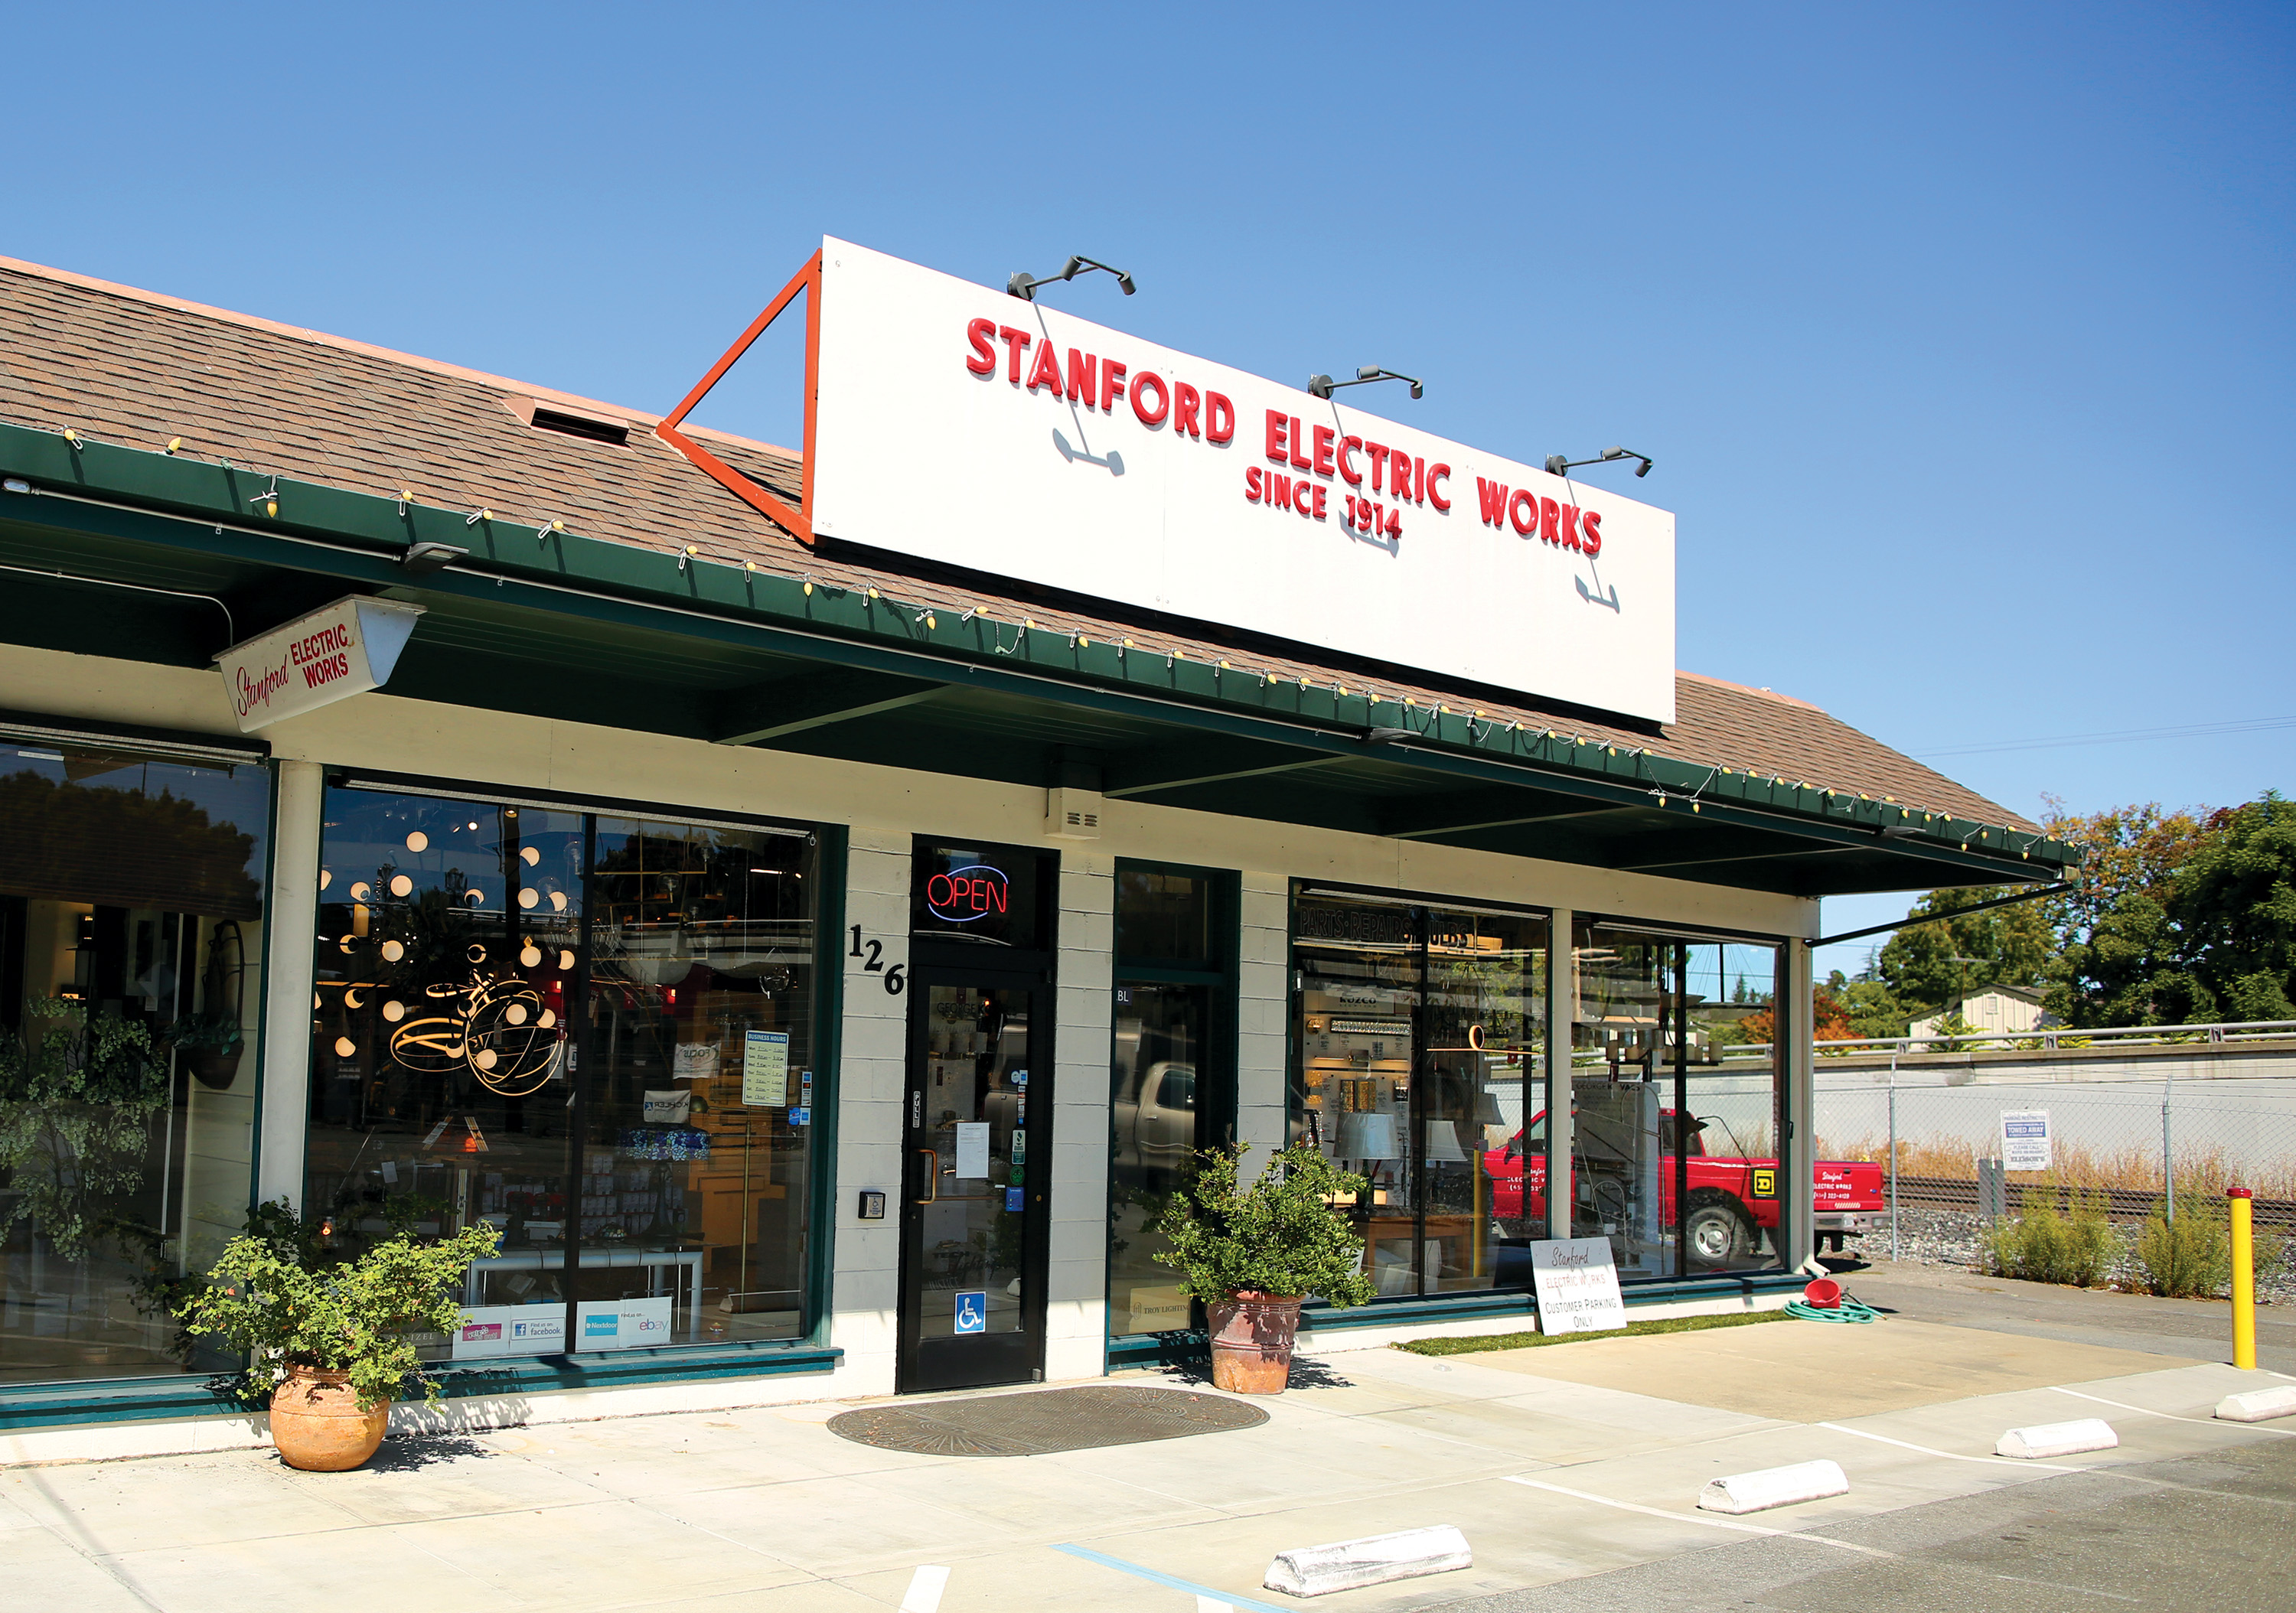 Stanford Electrical Works, previously located at High and Everett streets in Palo Alto, moved to Mountain in 2013. Photo by Sammy Dallal.